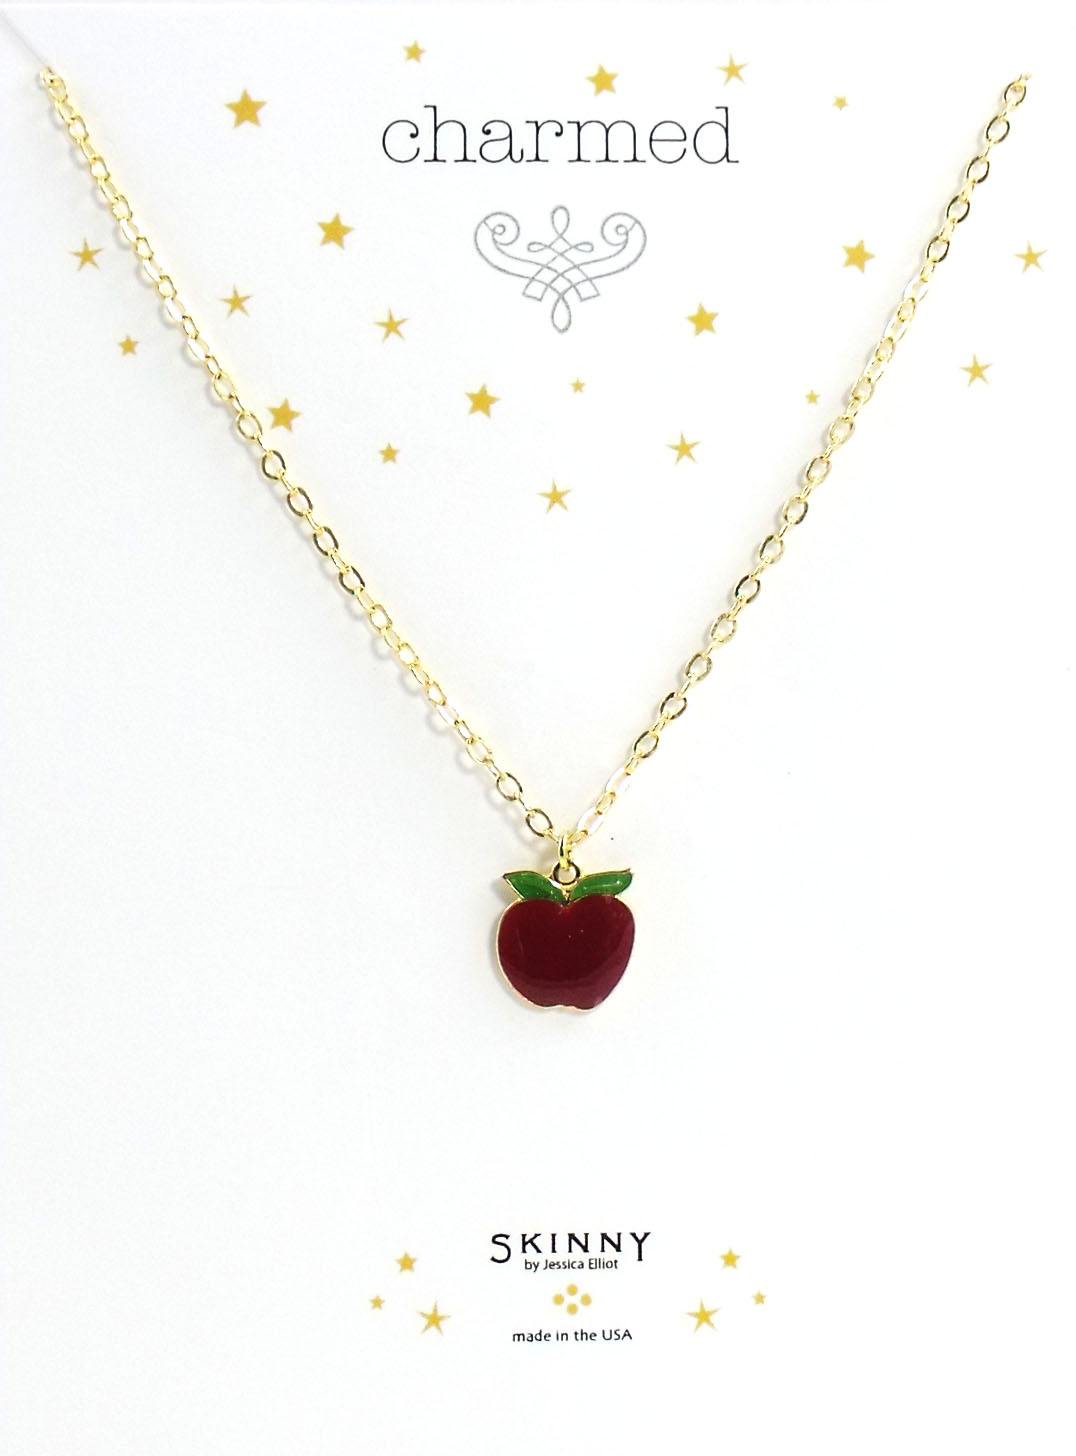 Skinny Jewelry Apple Charm Necklace Gold, by Jessica Elliot